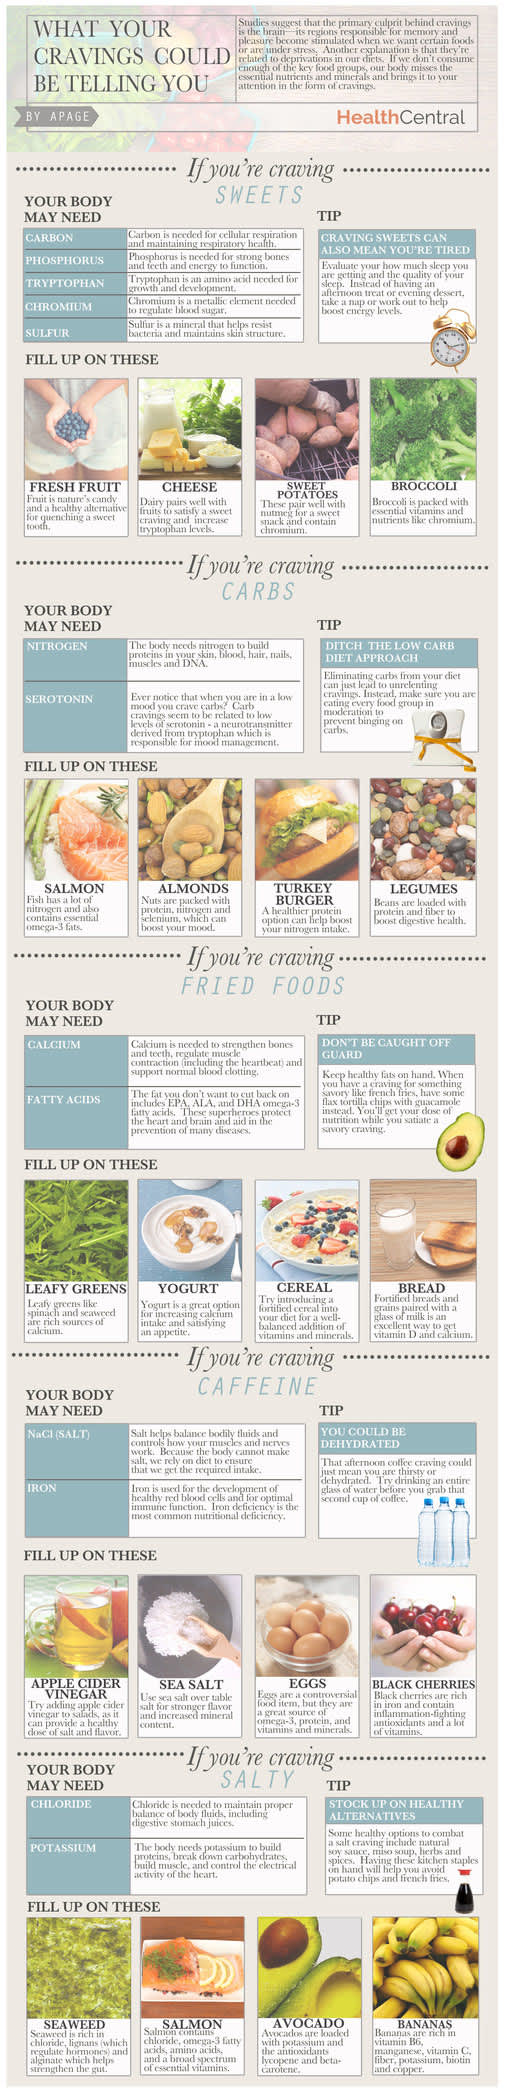 Cravings infographic.